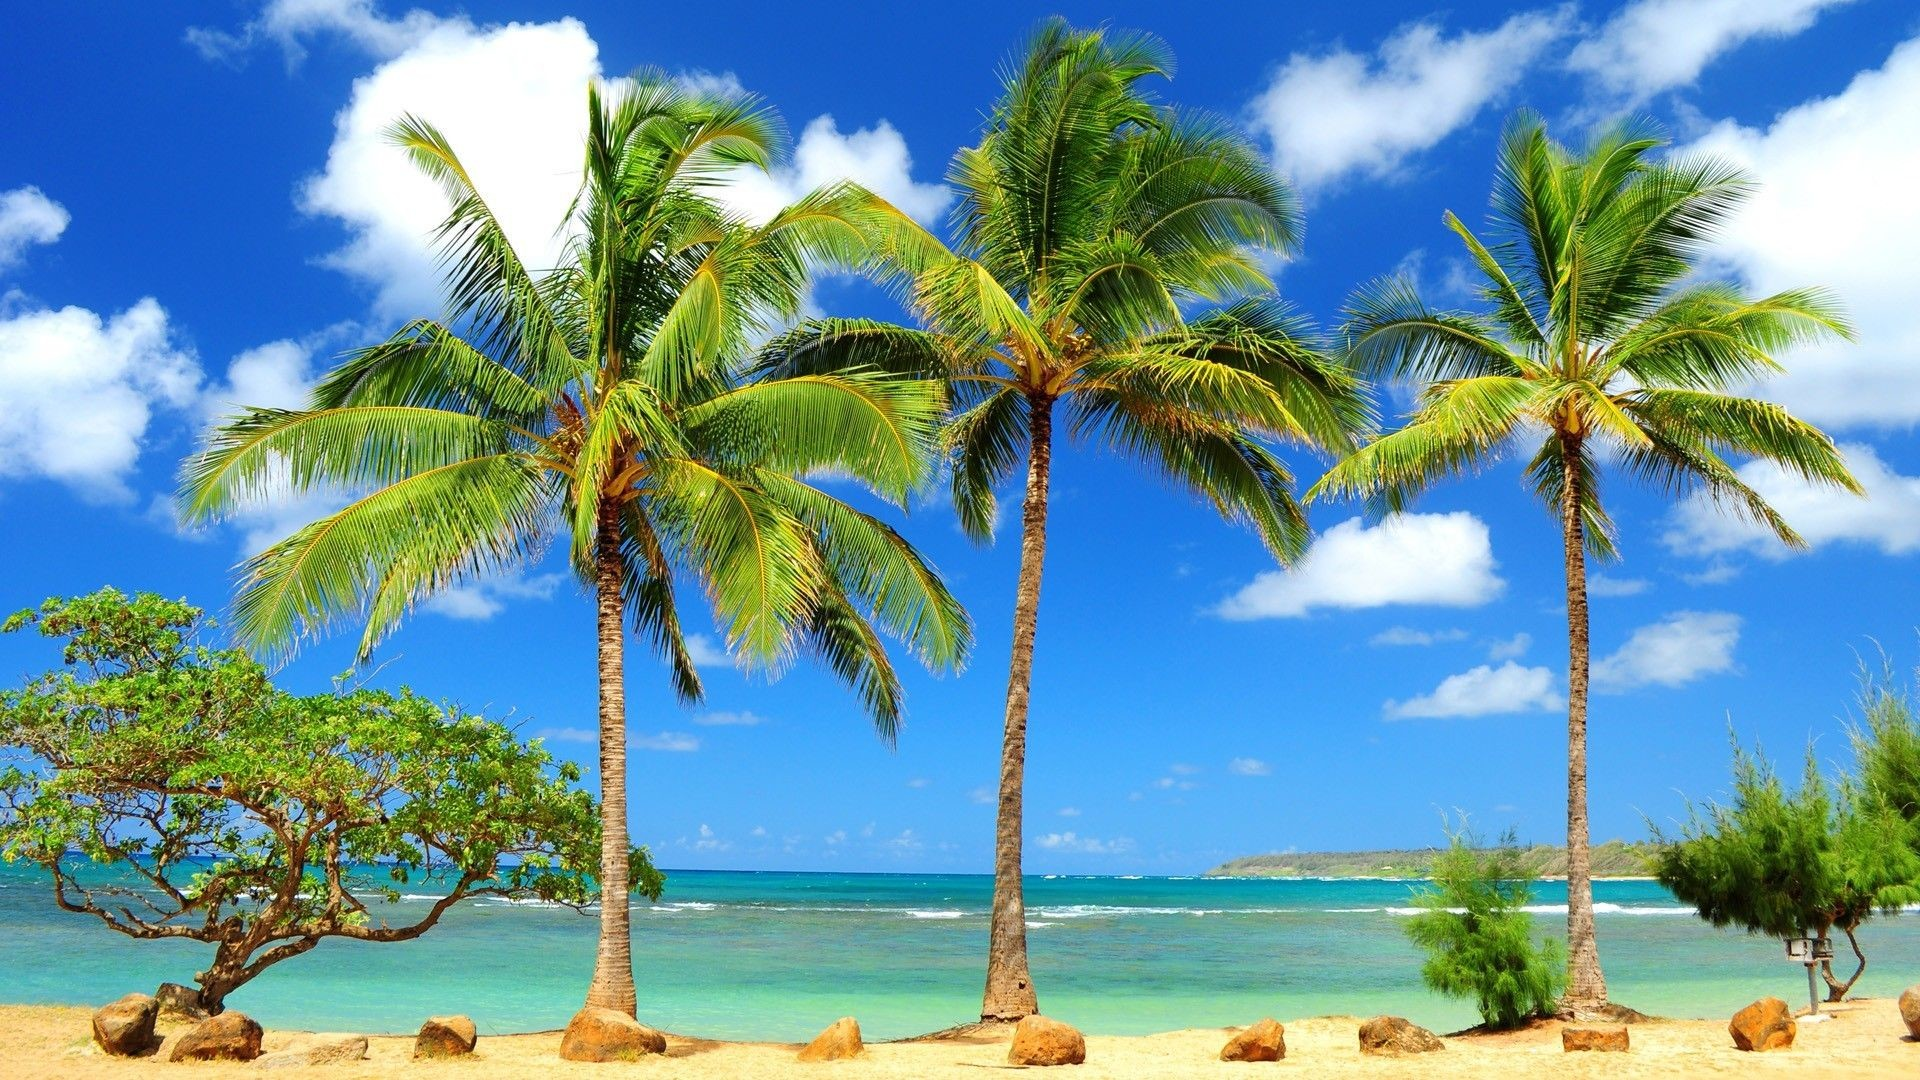 Tropical Hd Wallpapers Group   Data-src - High Resolution Palm Tree Background - HD Wallpaper